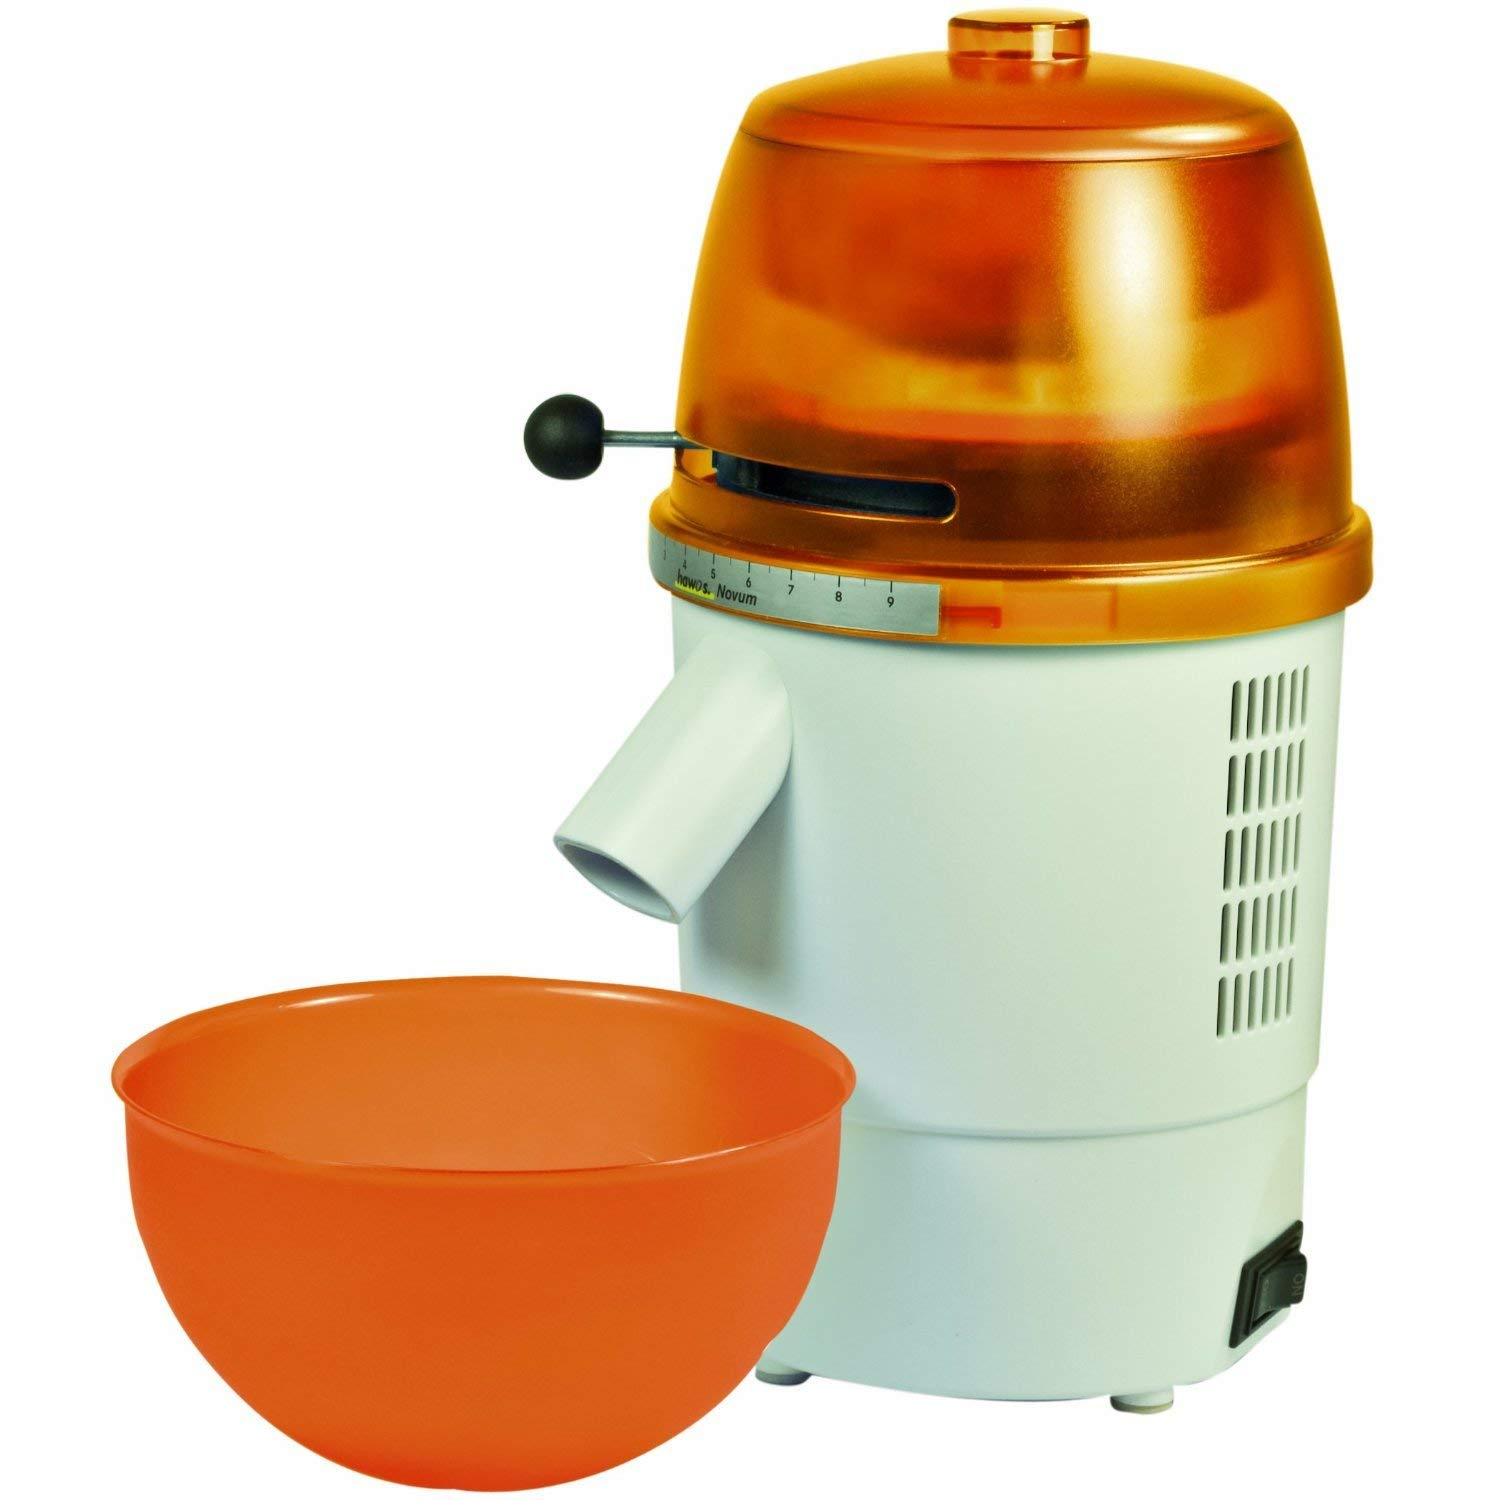 Hawos Novum Grain Mill with Funnel and Bowl Color: Orange 220-240 Volt